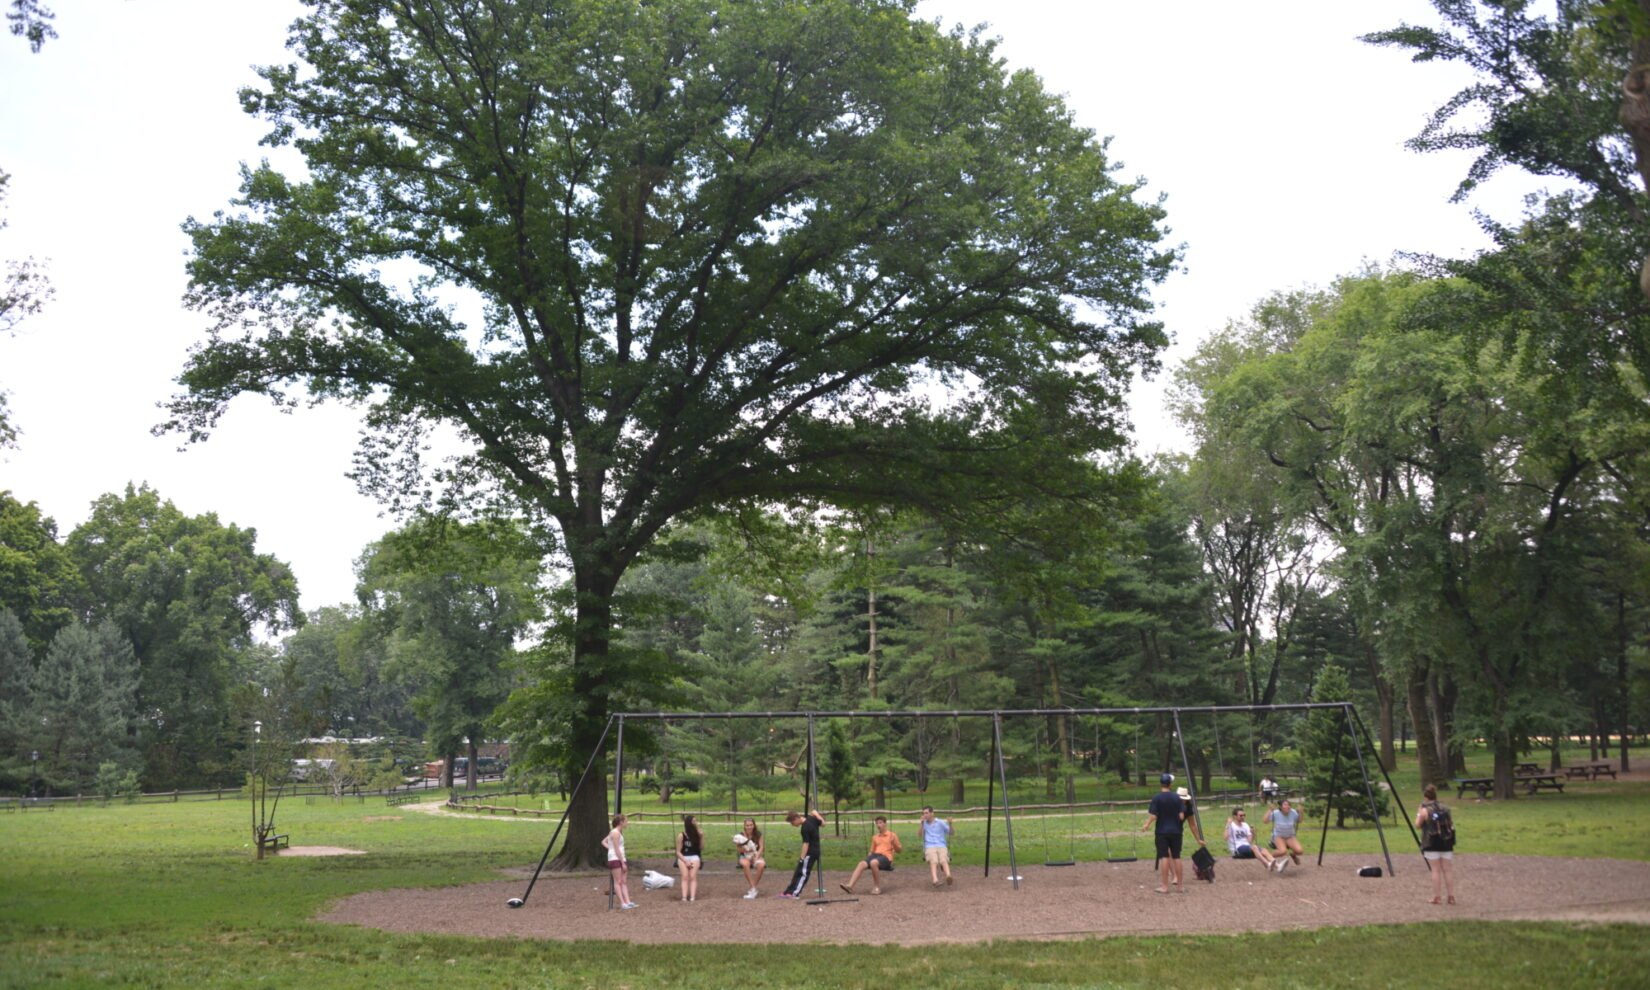 Park visitors enjoy the swings surrounded by the trees of the Pinetum.